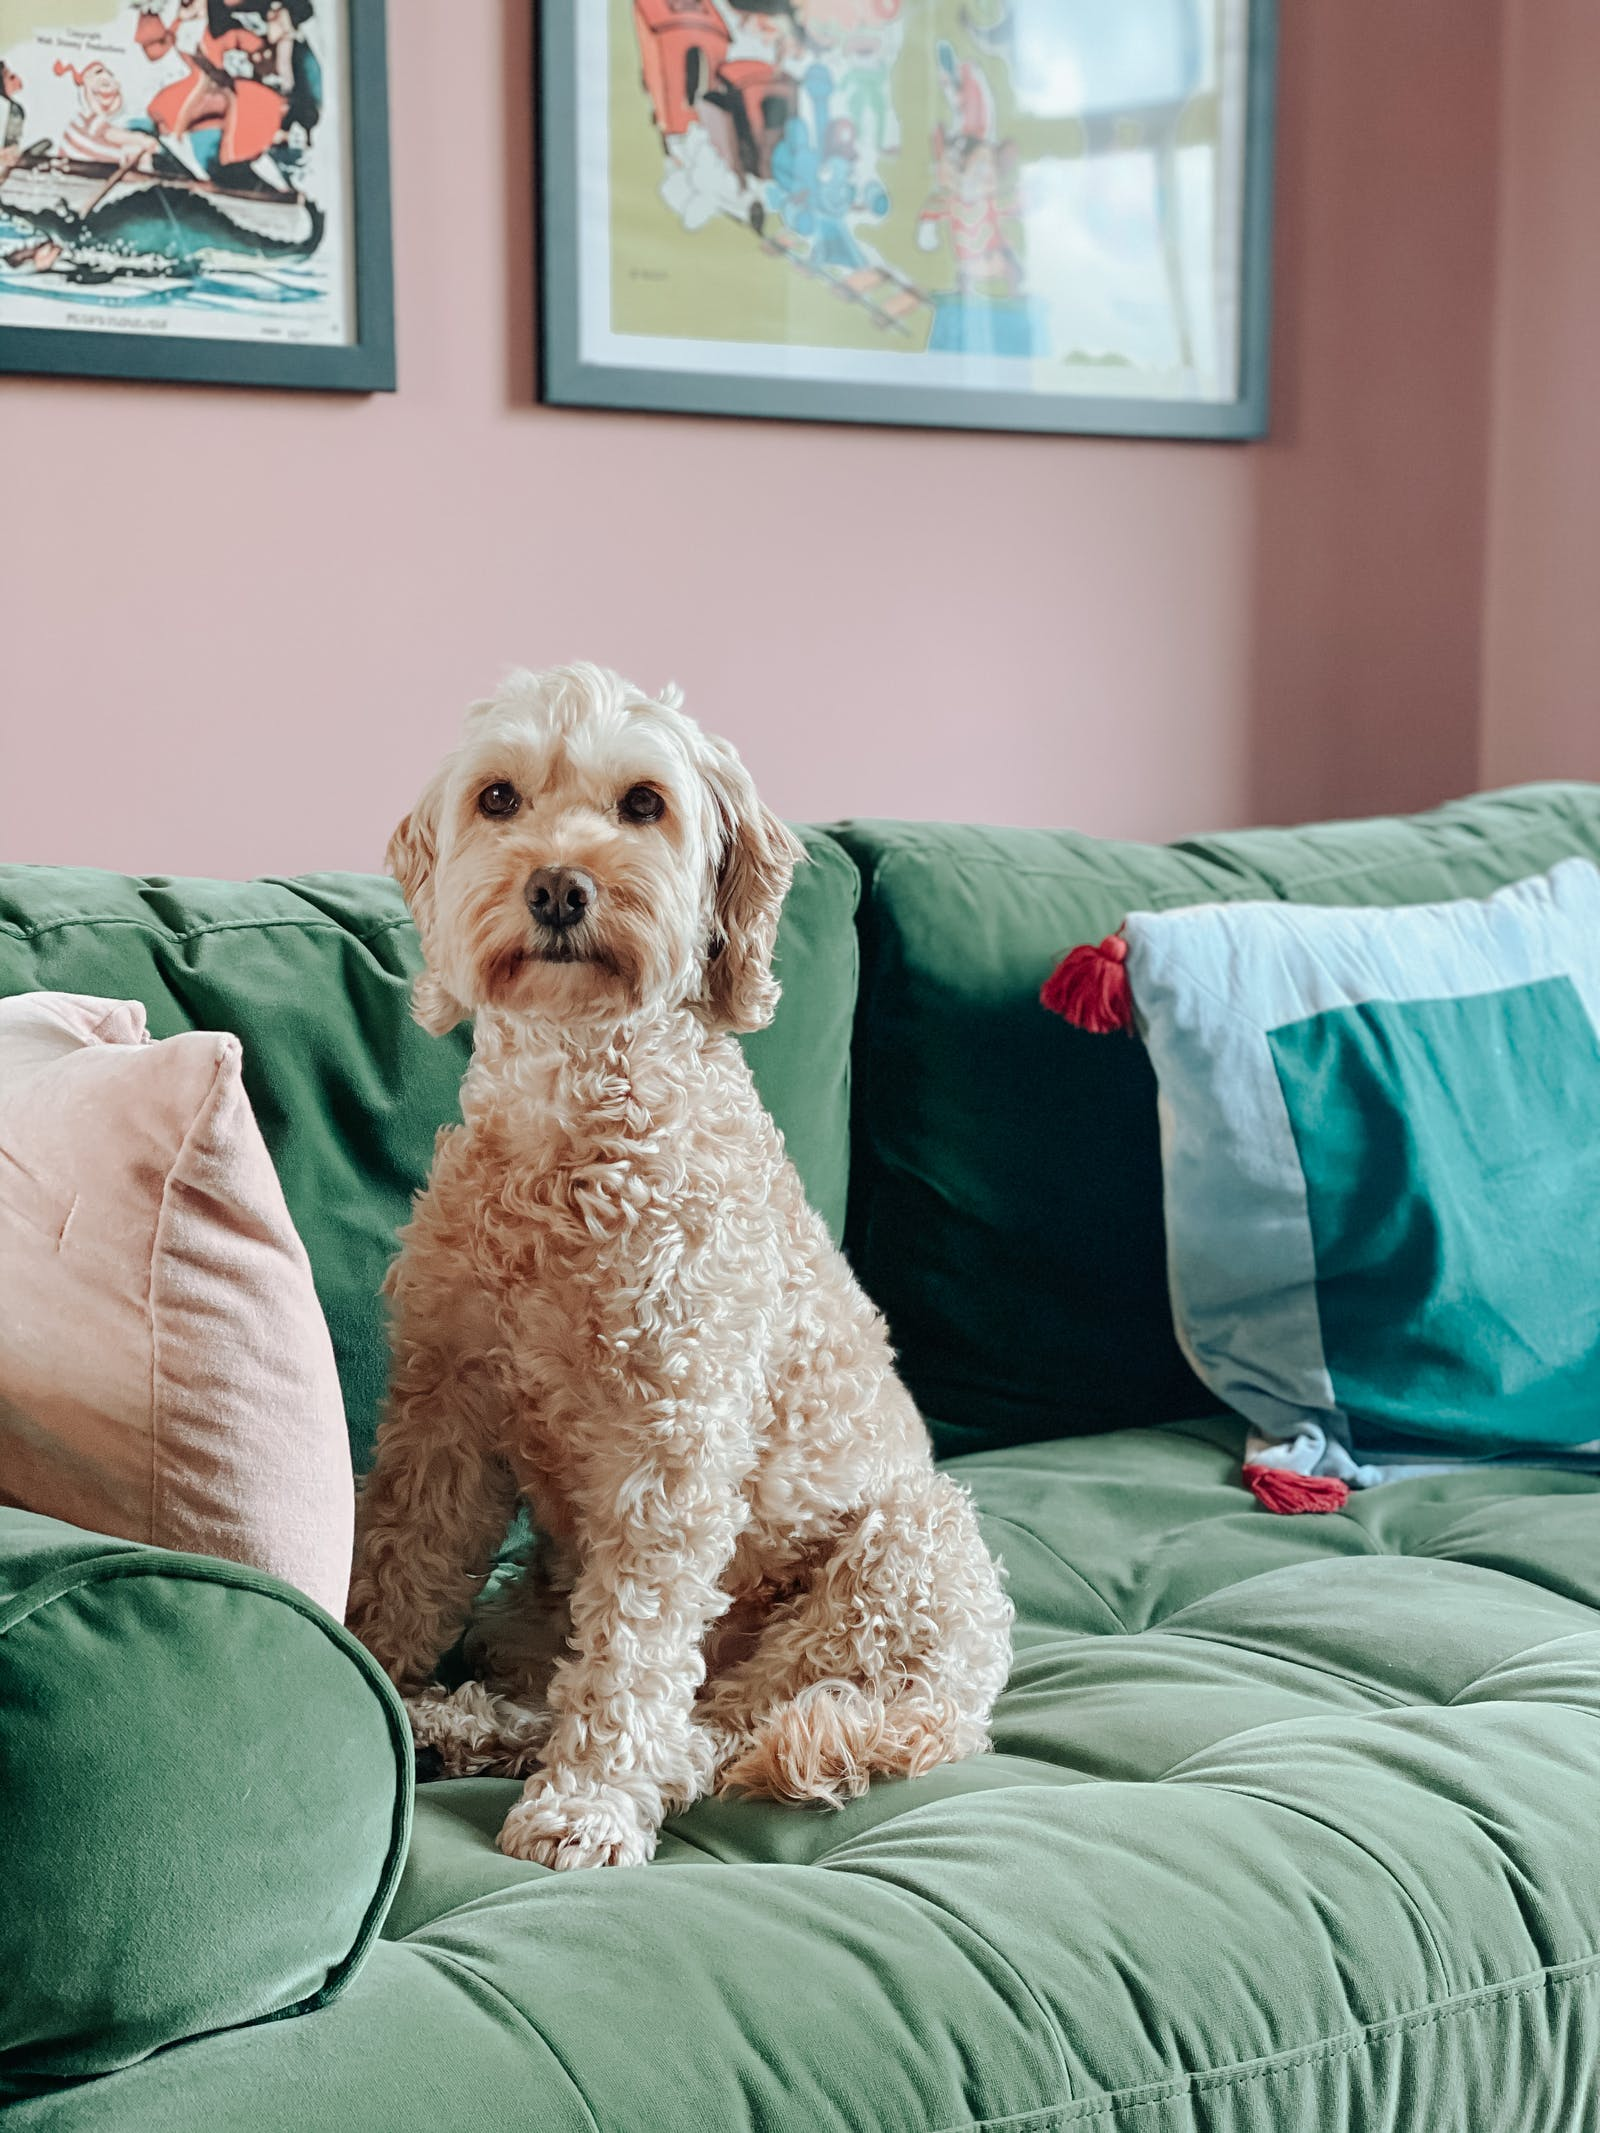 Cockapoo on green velvet sofa against a rose pink wall